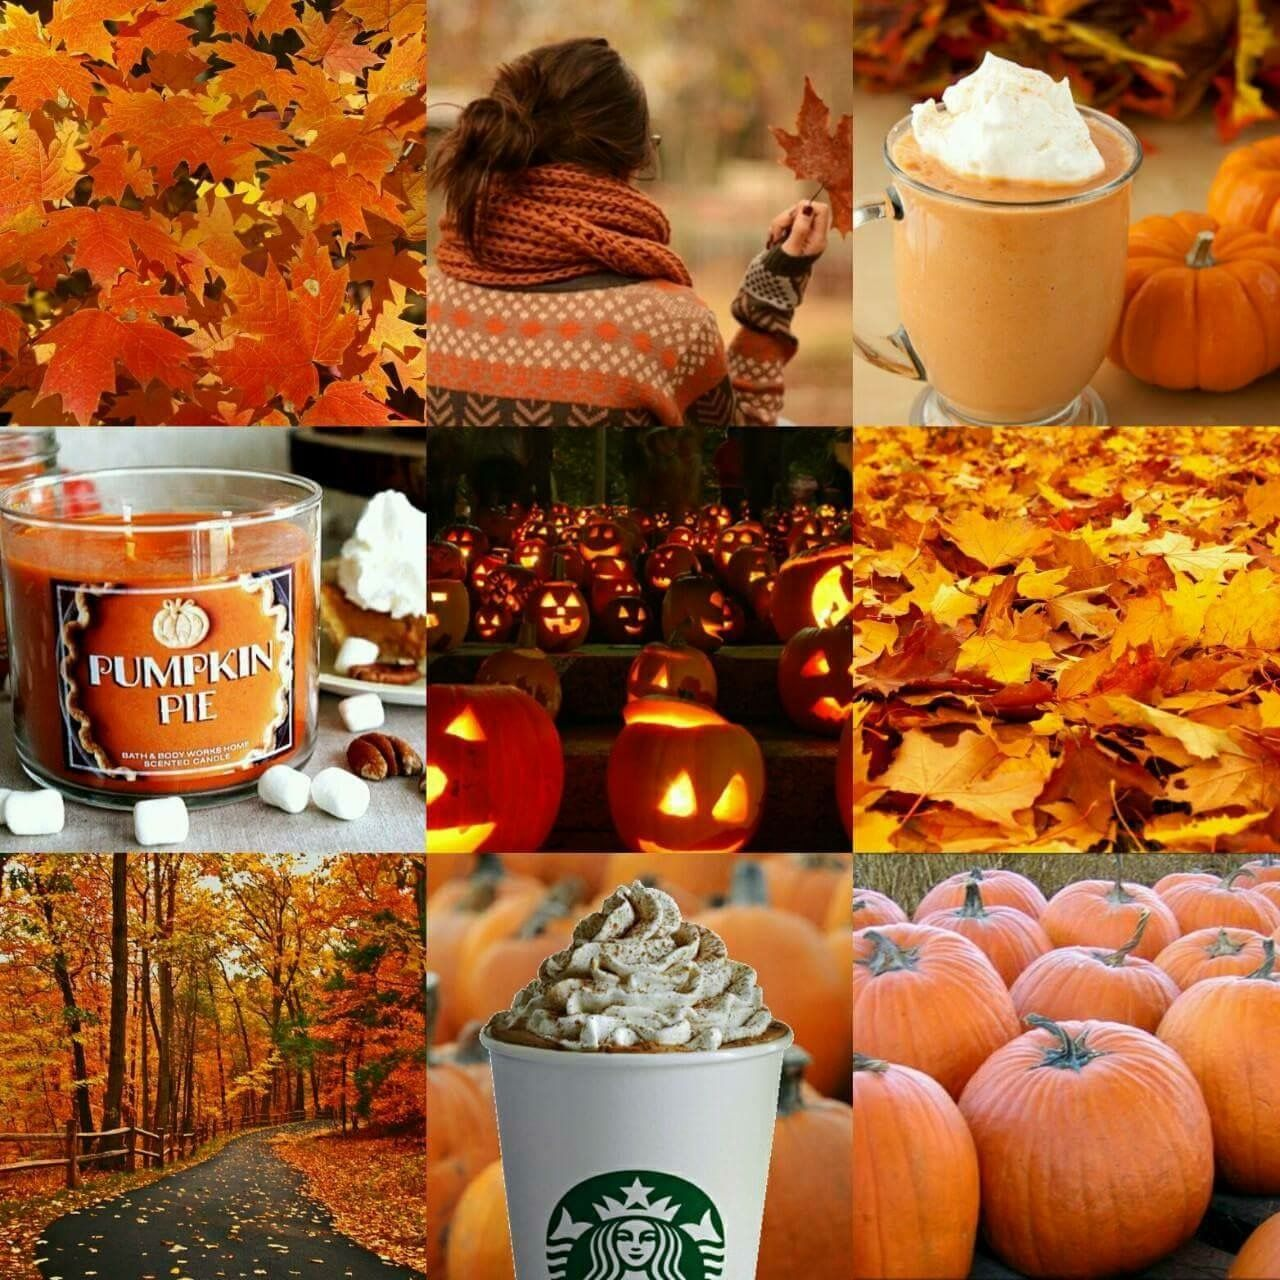 Pin By Lexi Lambert On Autumn Autumn Aesthetic Tumblr Autumn Aesthetic Fall Wallpaper